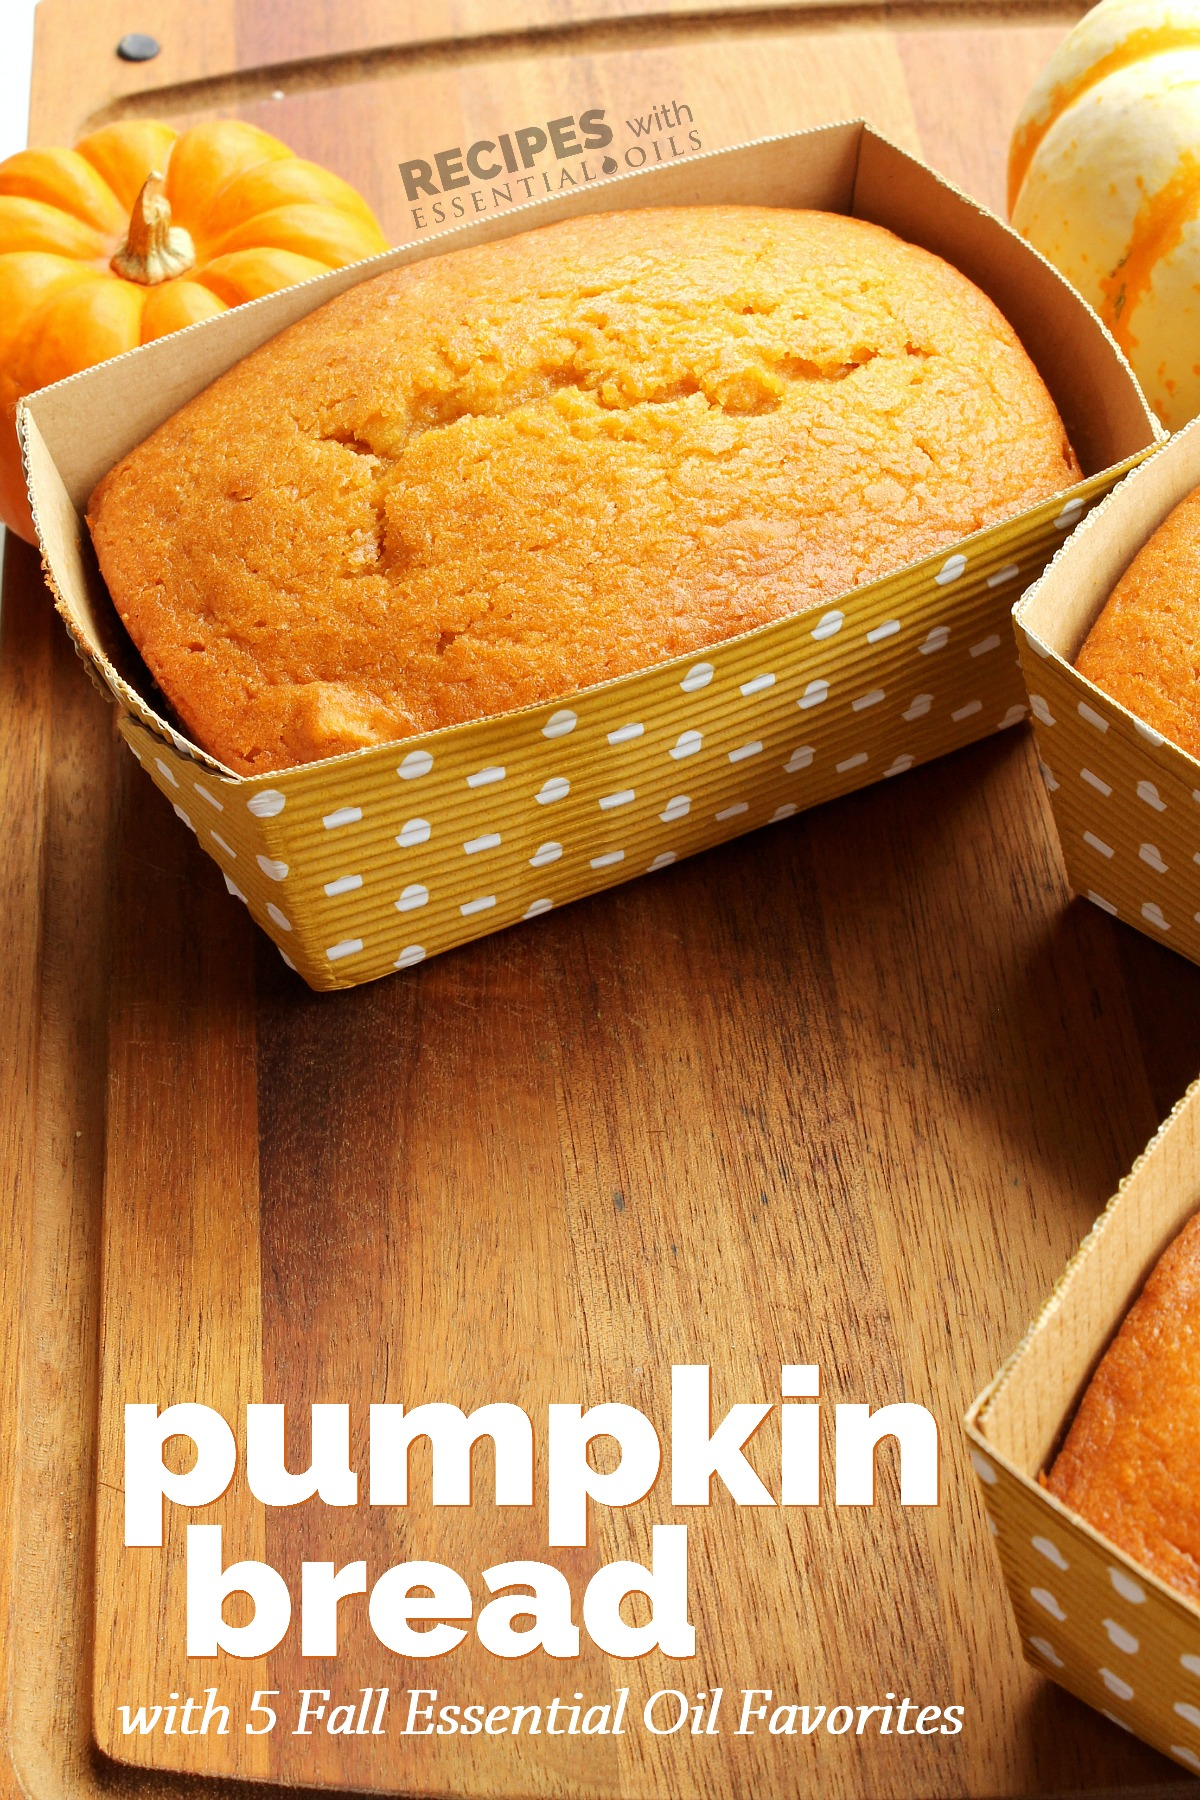 Delicious pumpkin bread with 5 fall essential oil favorites delicious homemade pumpkin bread from recipeswithessentialoils forumfinder Gallery